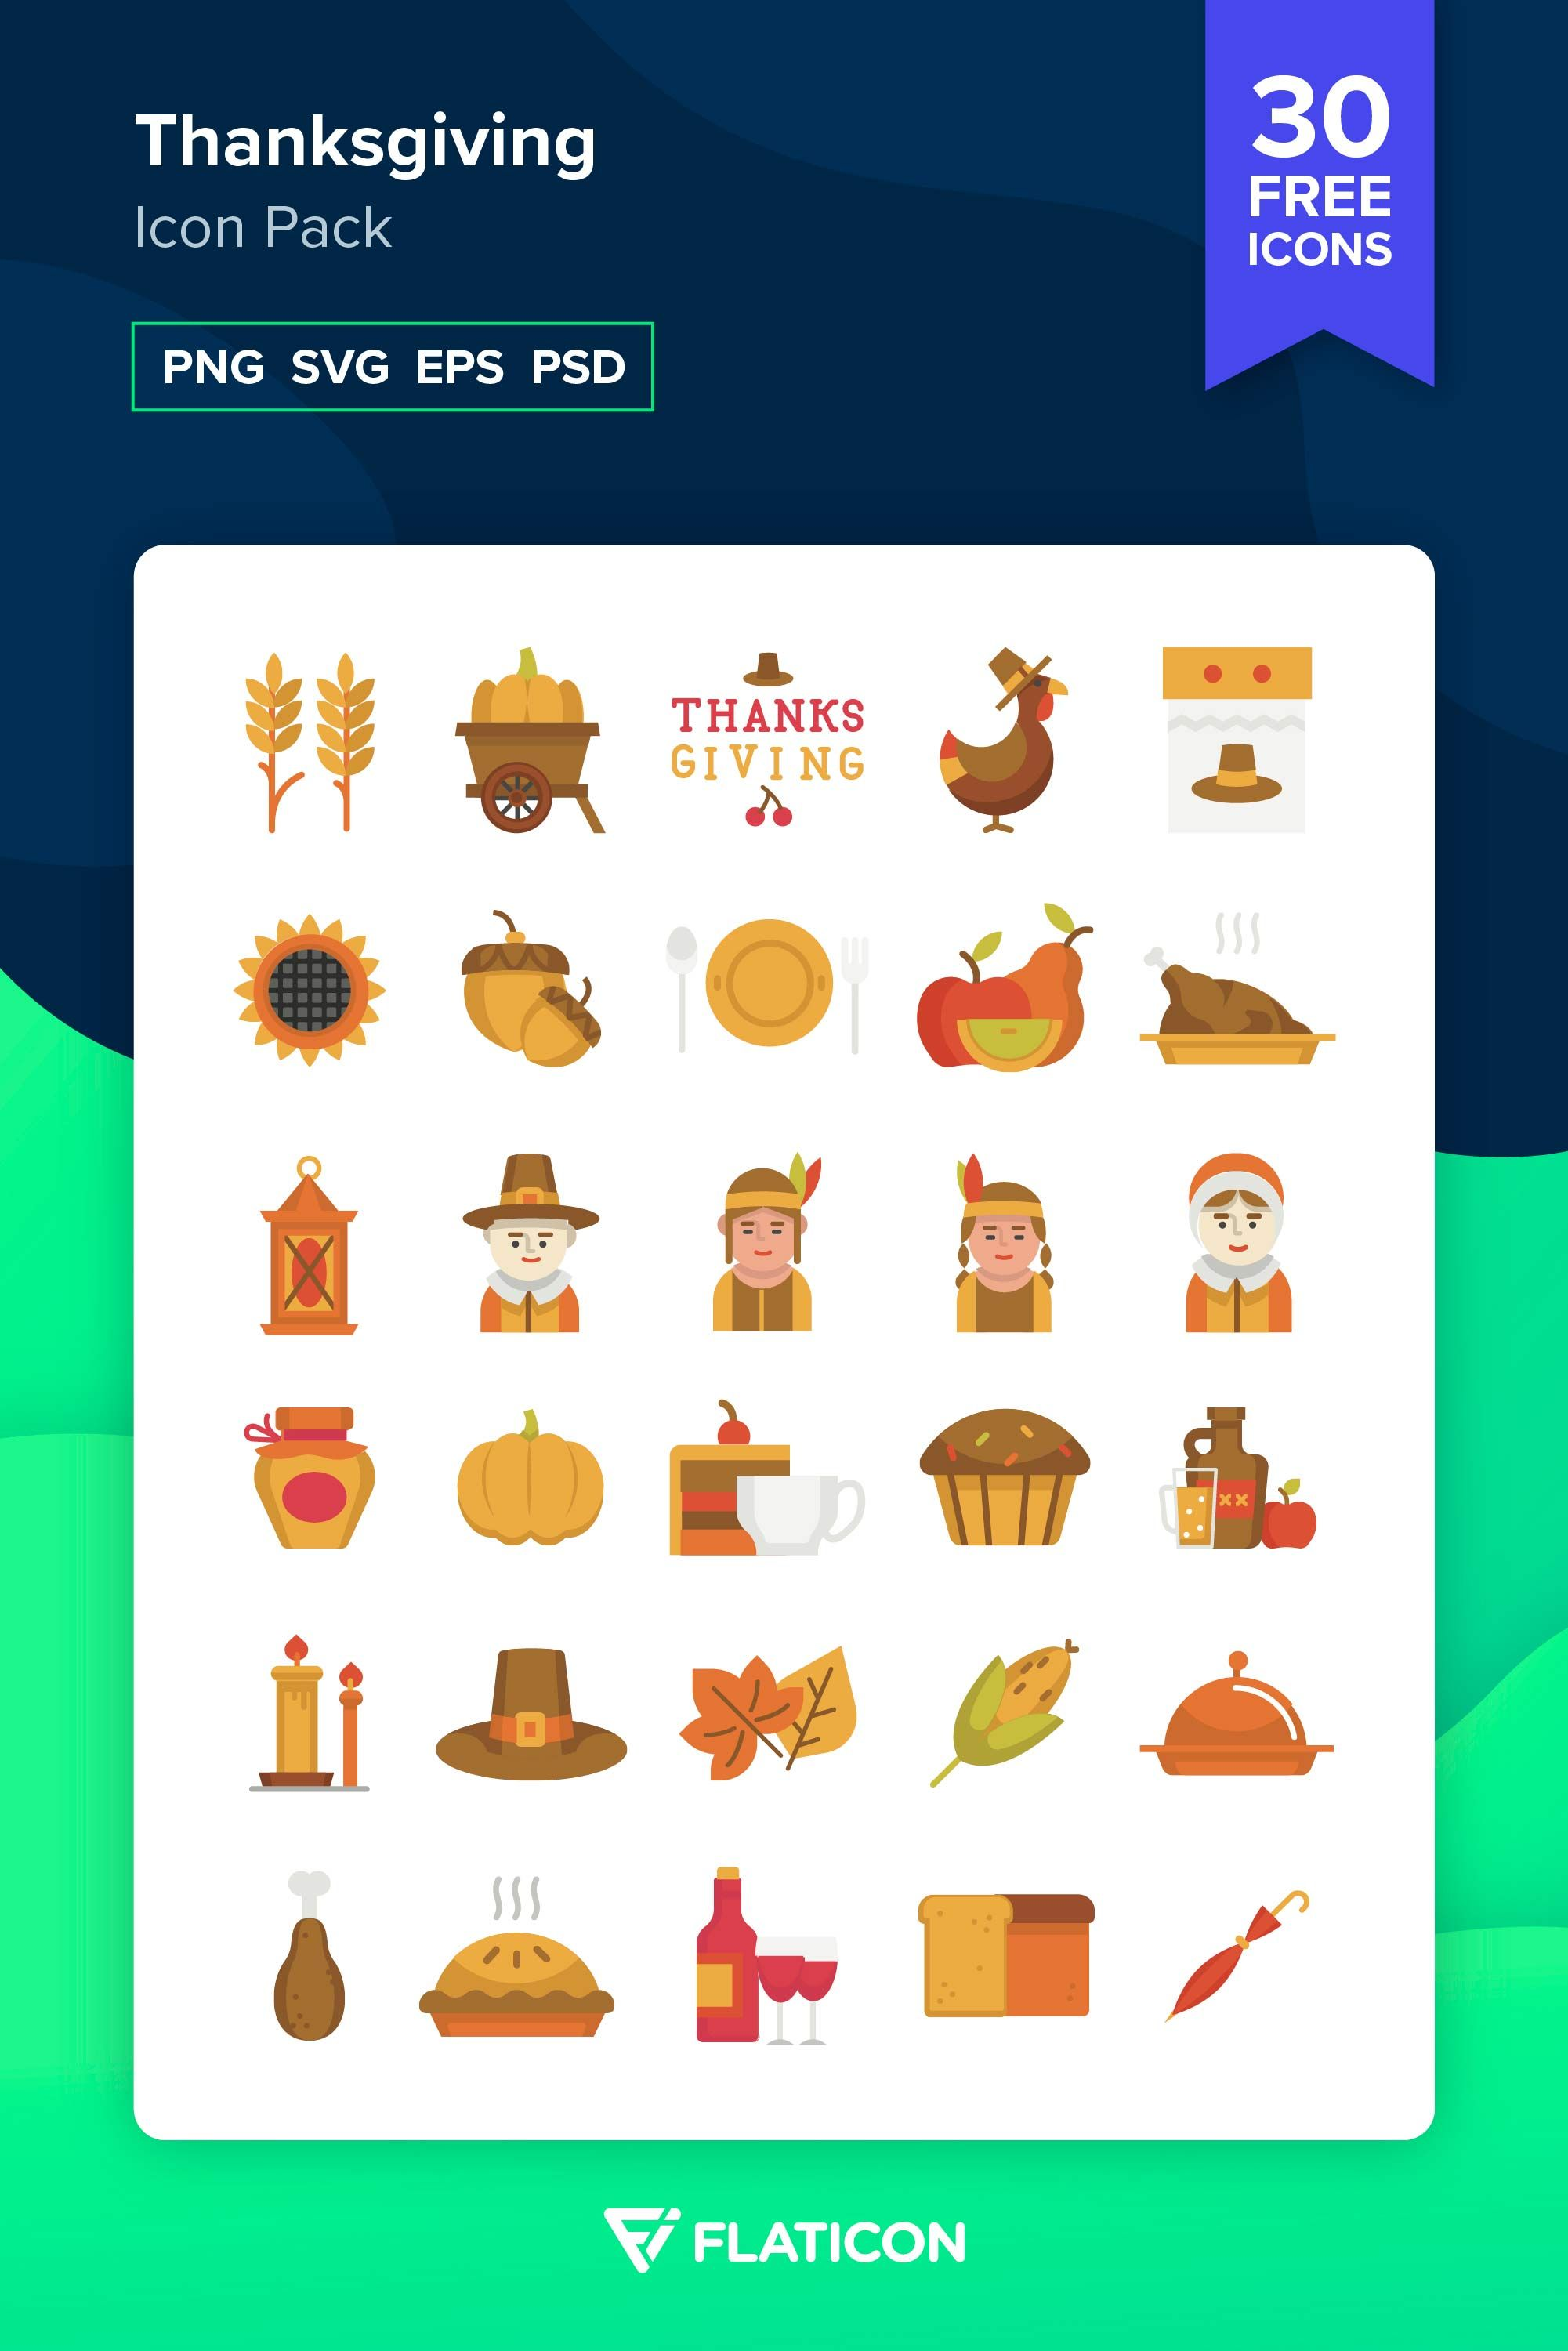 30 free vector icons of Thanksgiving designed by Freepik